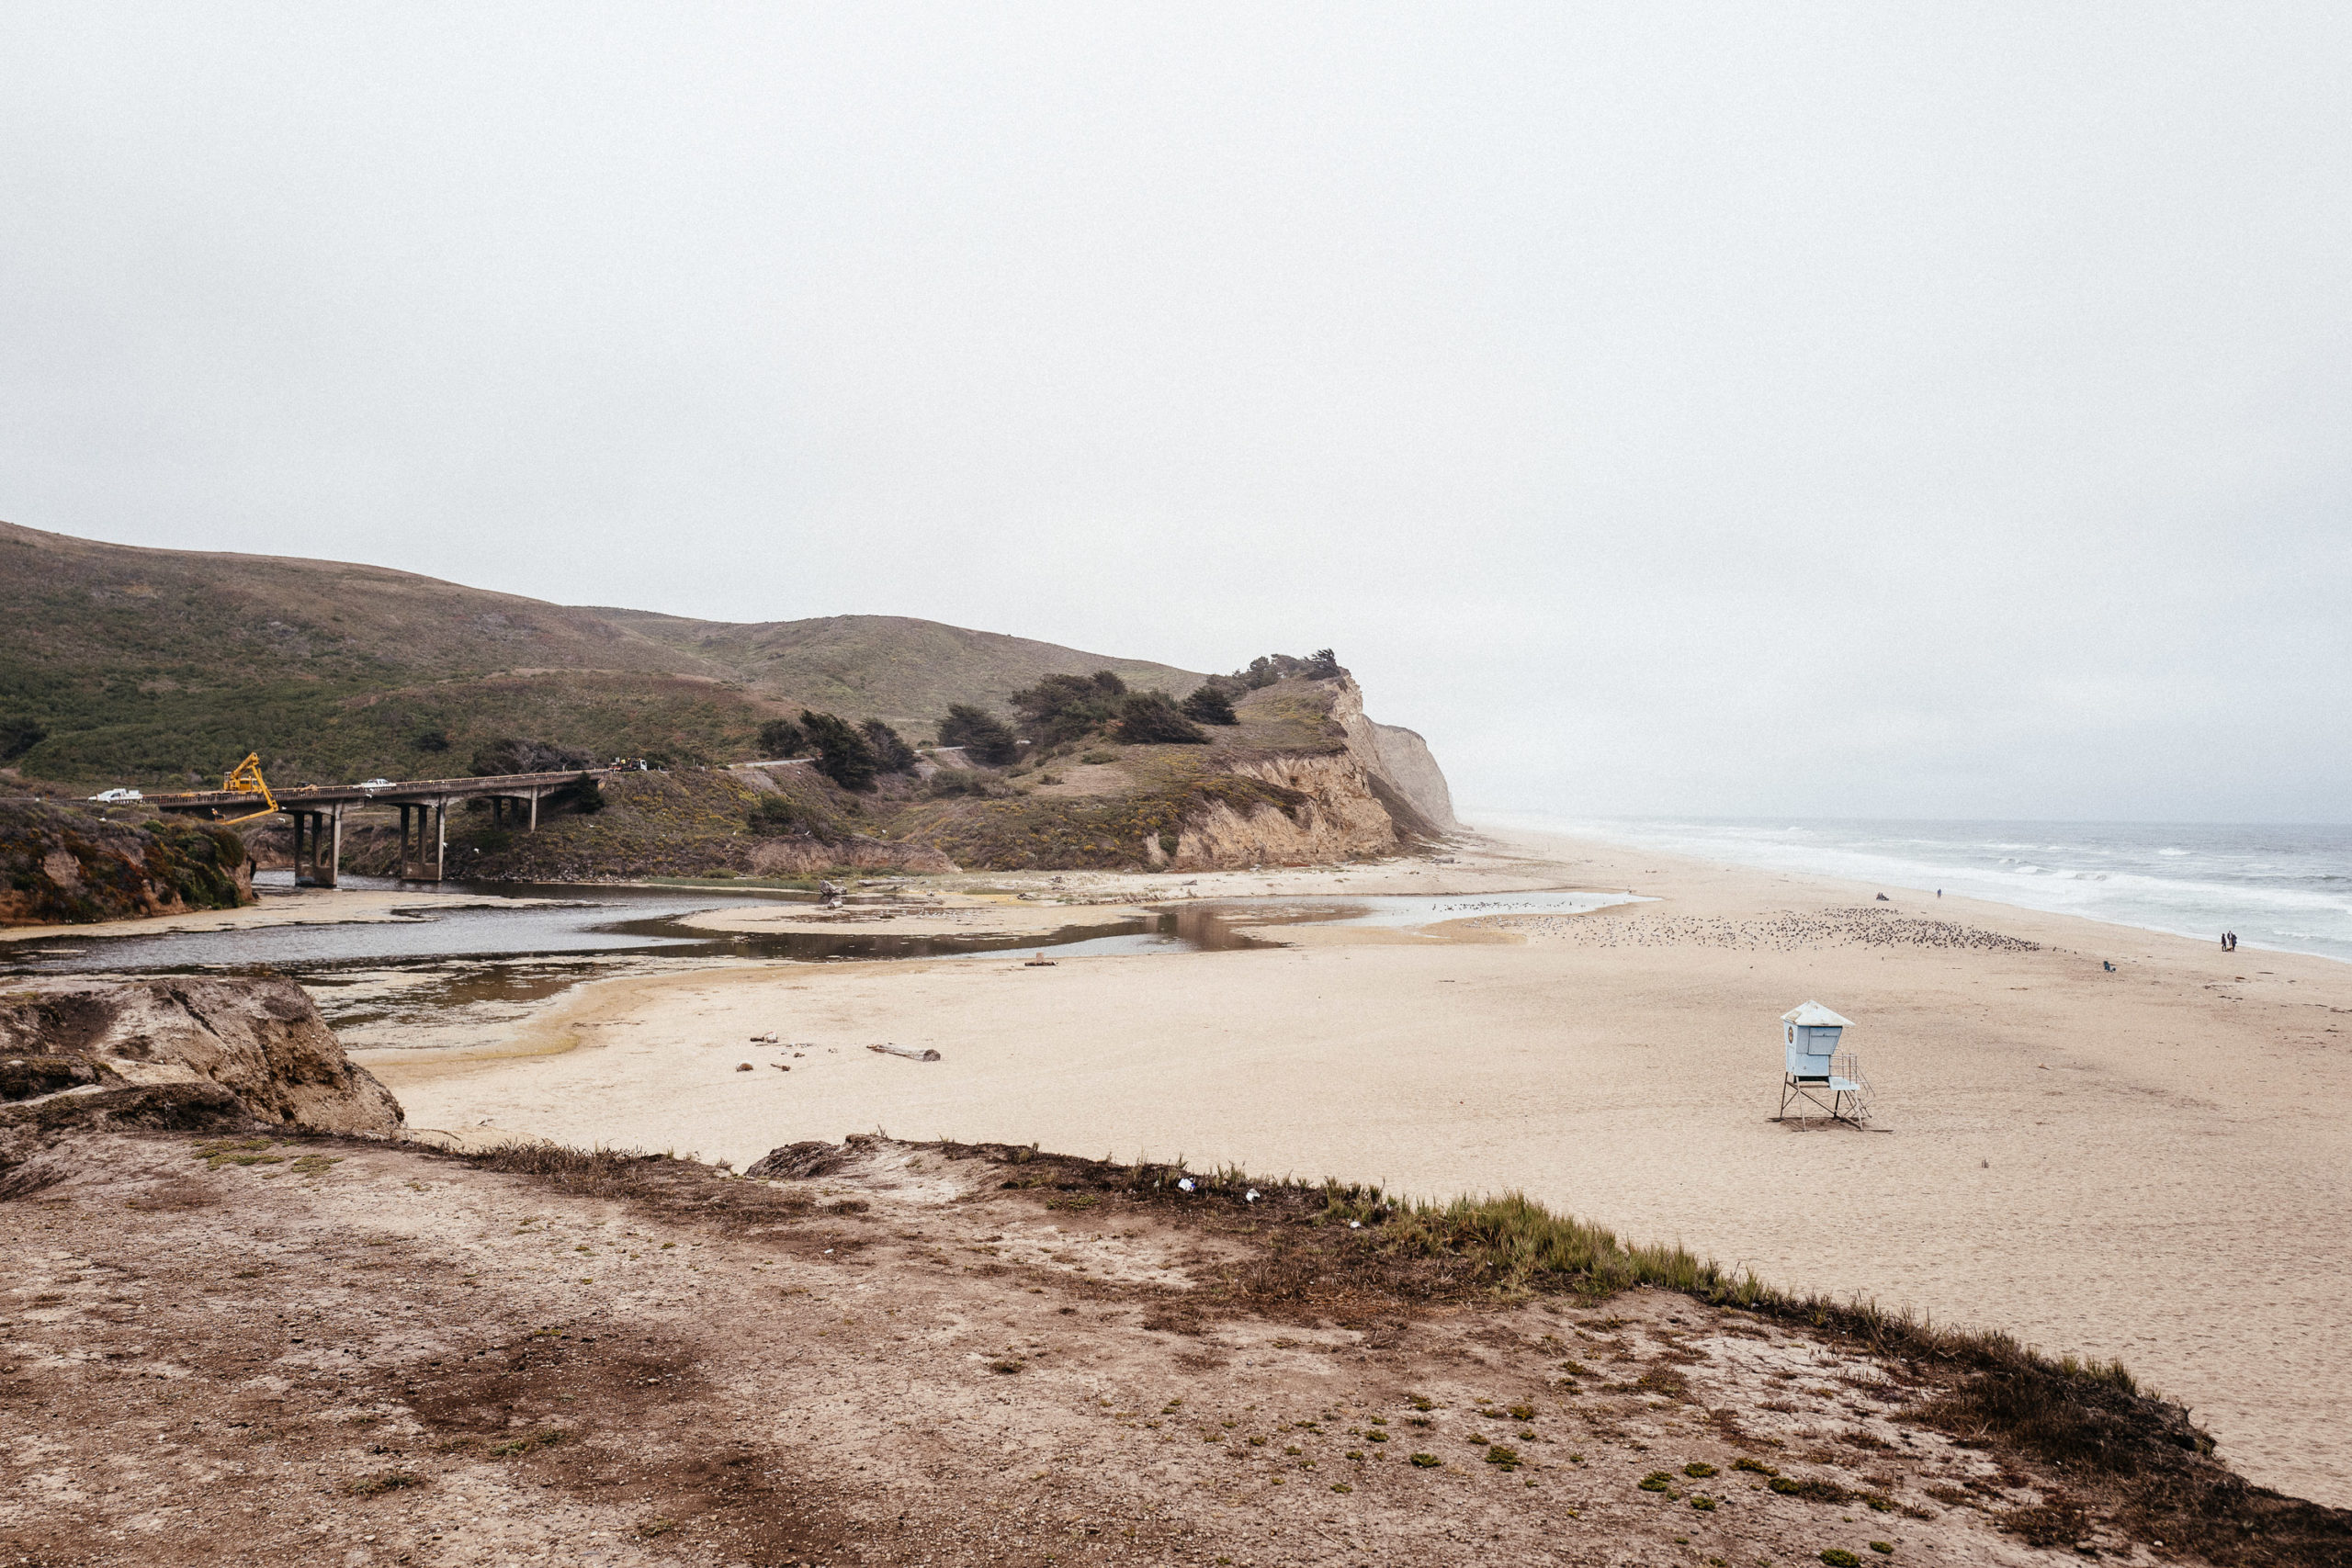 A largely empty beach on an overcast day